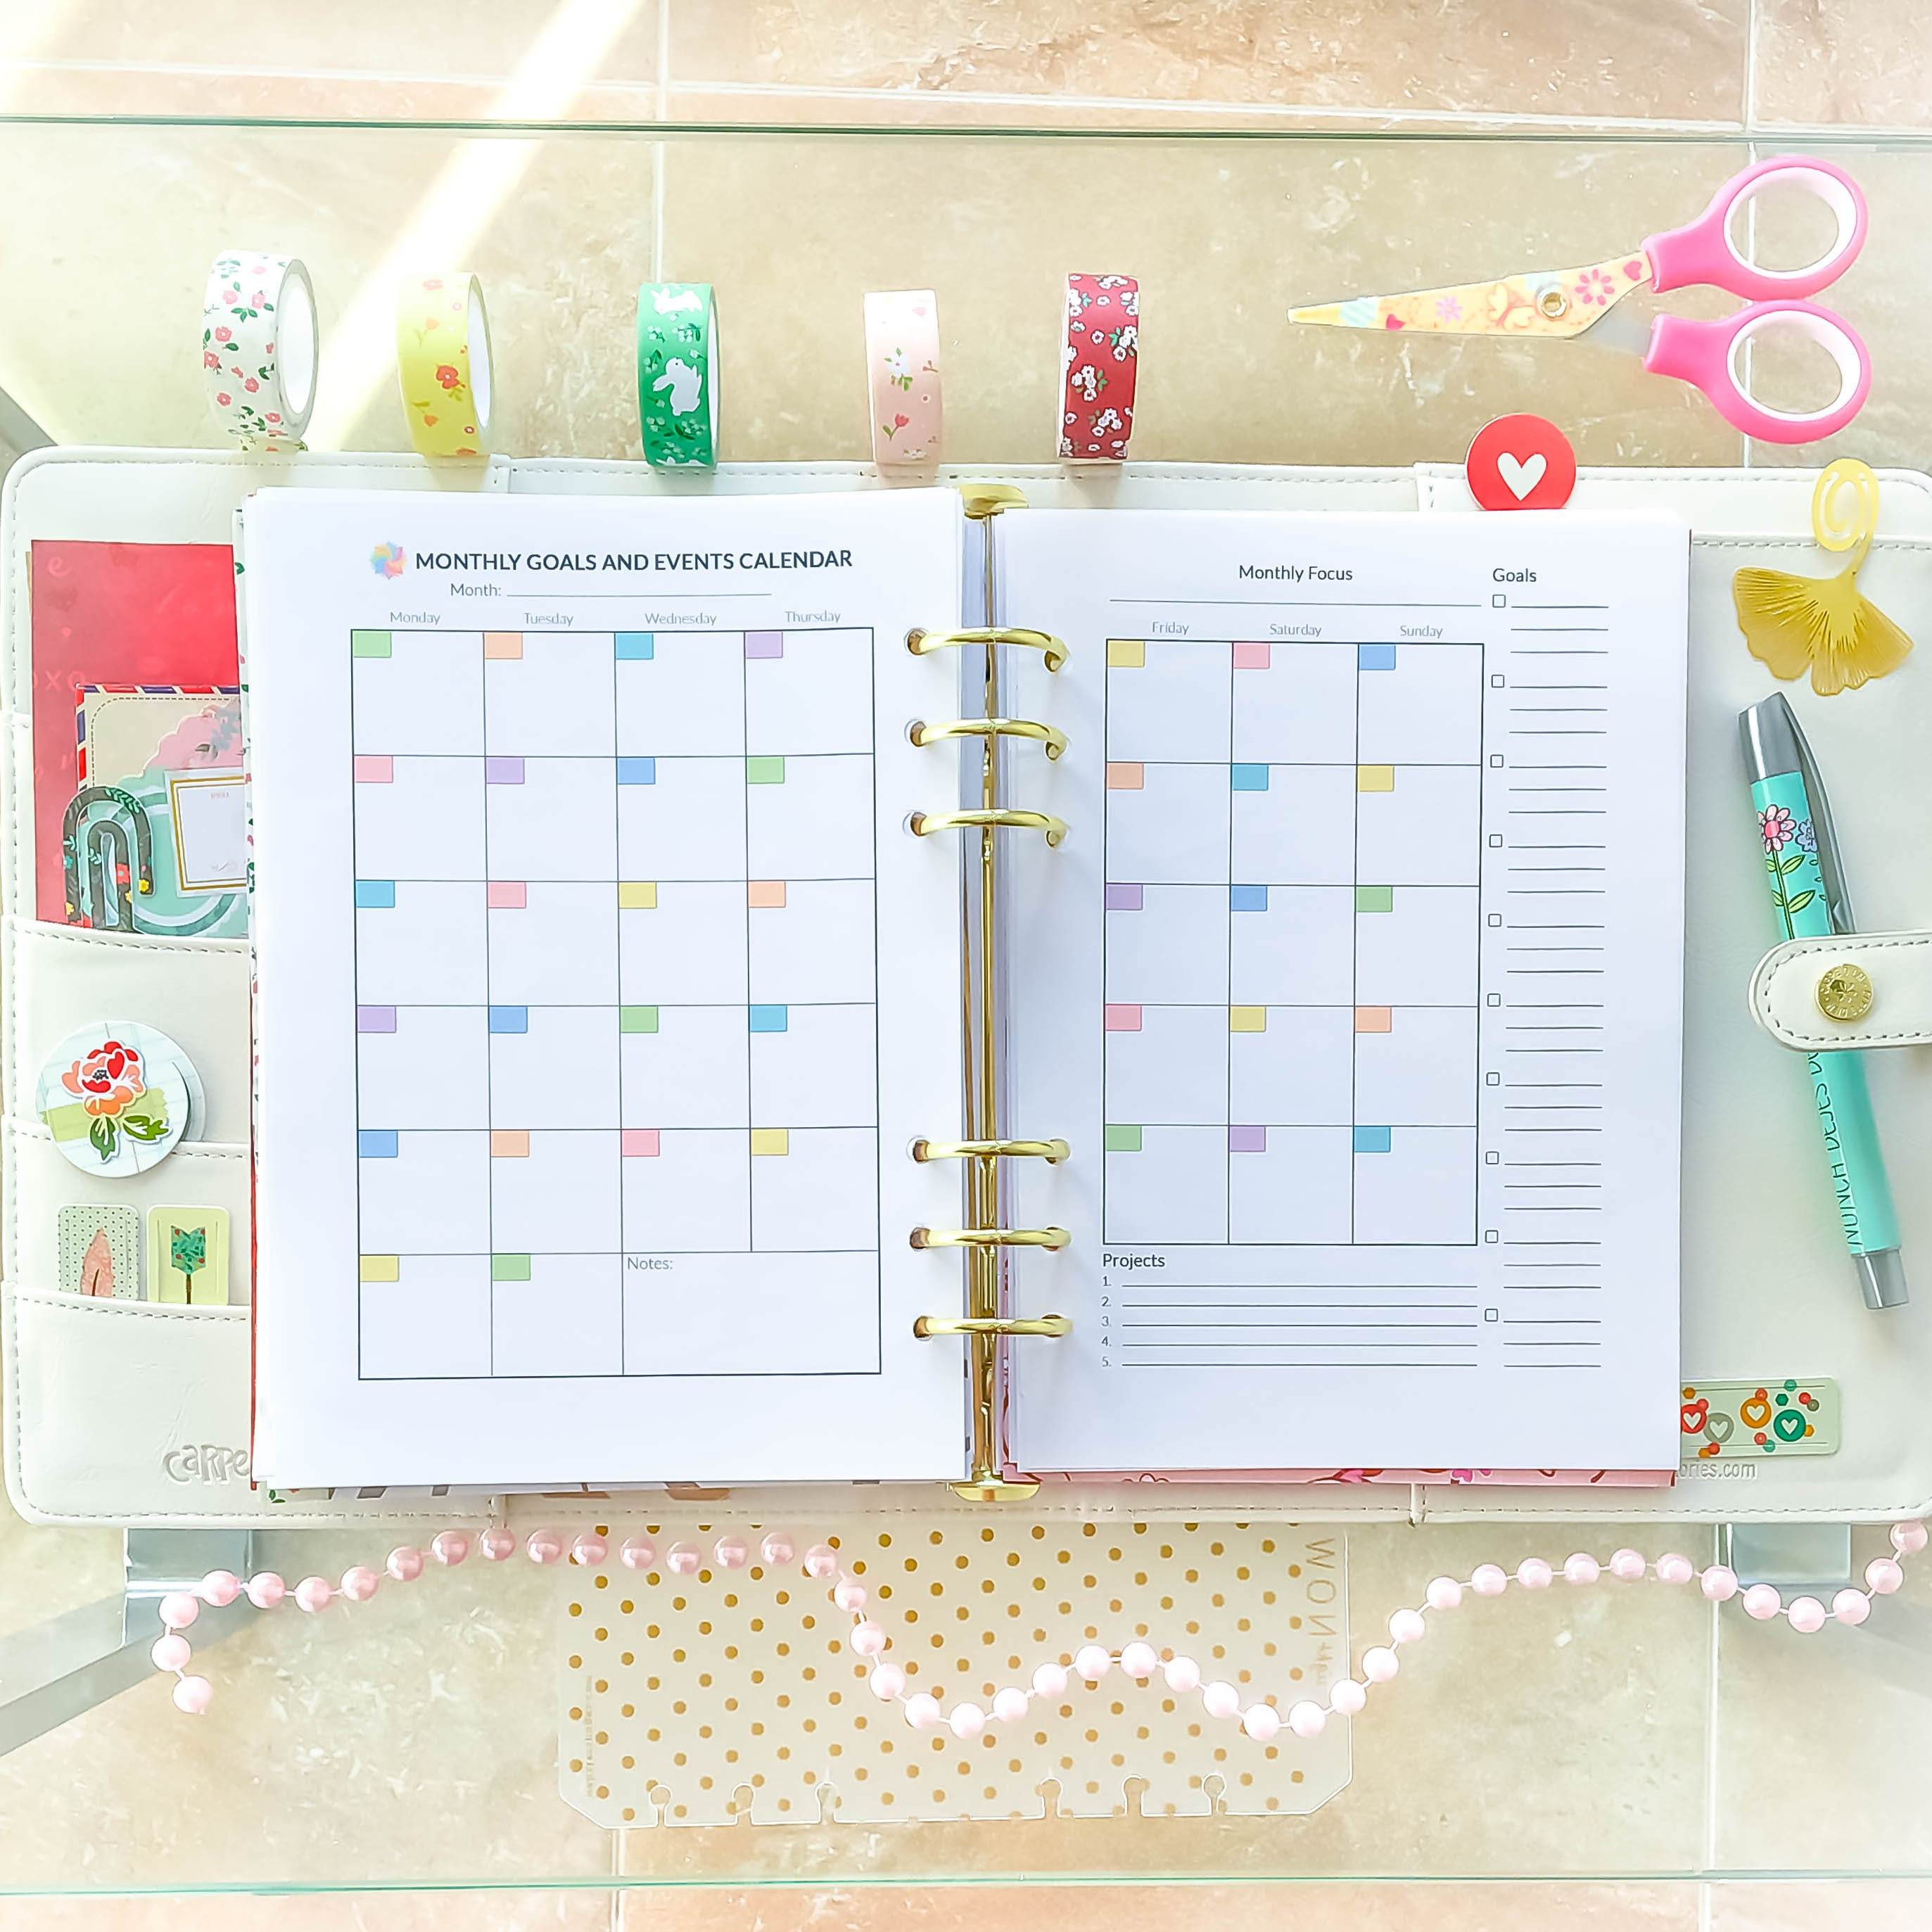 picture relating to Full Focus Planner Pdf known as A5 Planner Inserts Regular Planner Printable PDF Month-to-month Organizer Thirty day period Upon 2 Web pages A5 Filofax Month-to-month Refills 5.8 x 8.3 Instantaneous Obtain